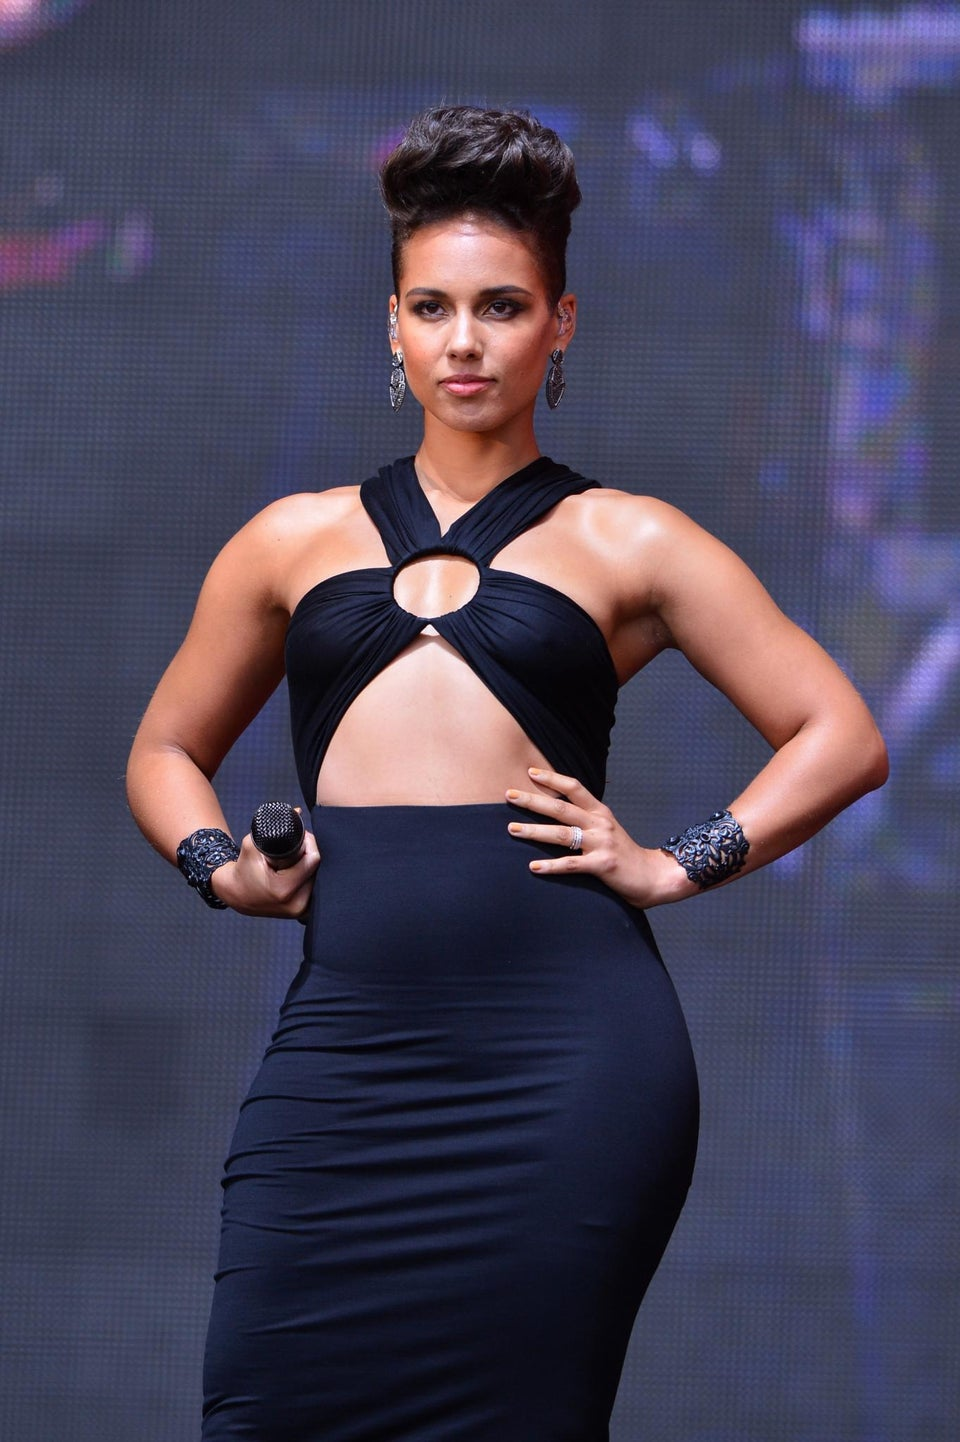 EXCLUSIVE: Alicia Keys Talks Producing 'Mister & Pete' and Love with Swizz Beatz